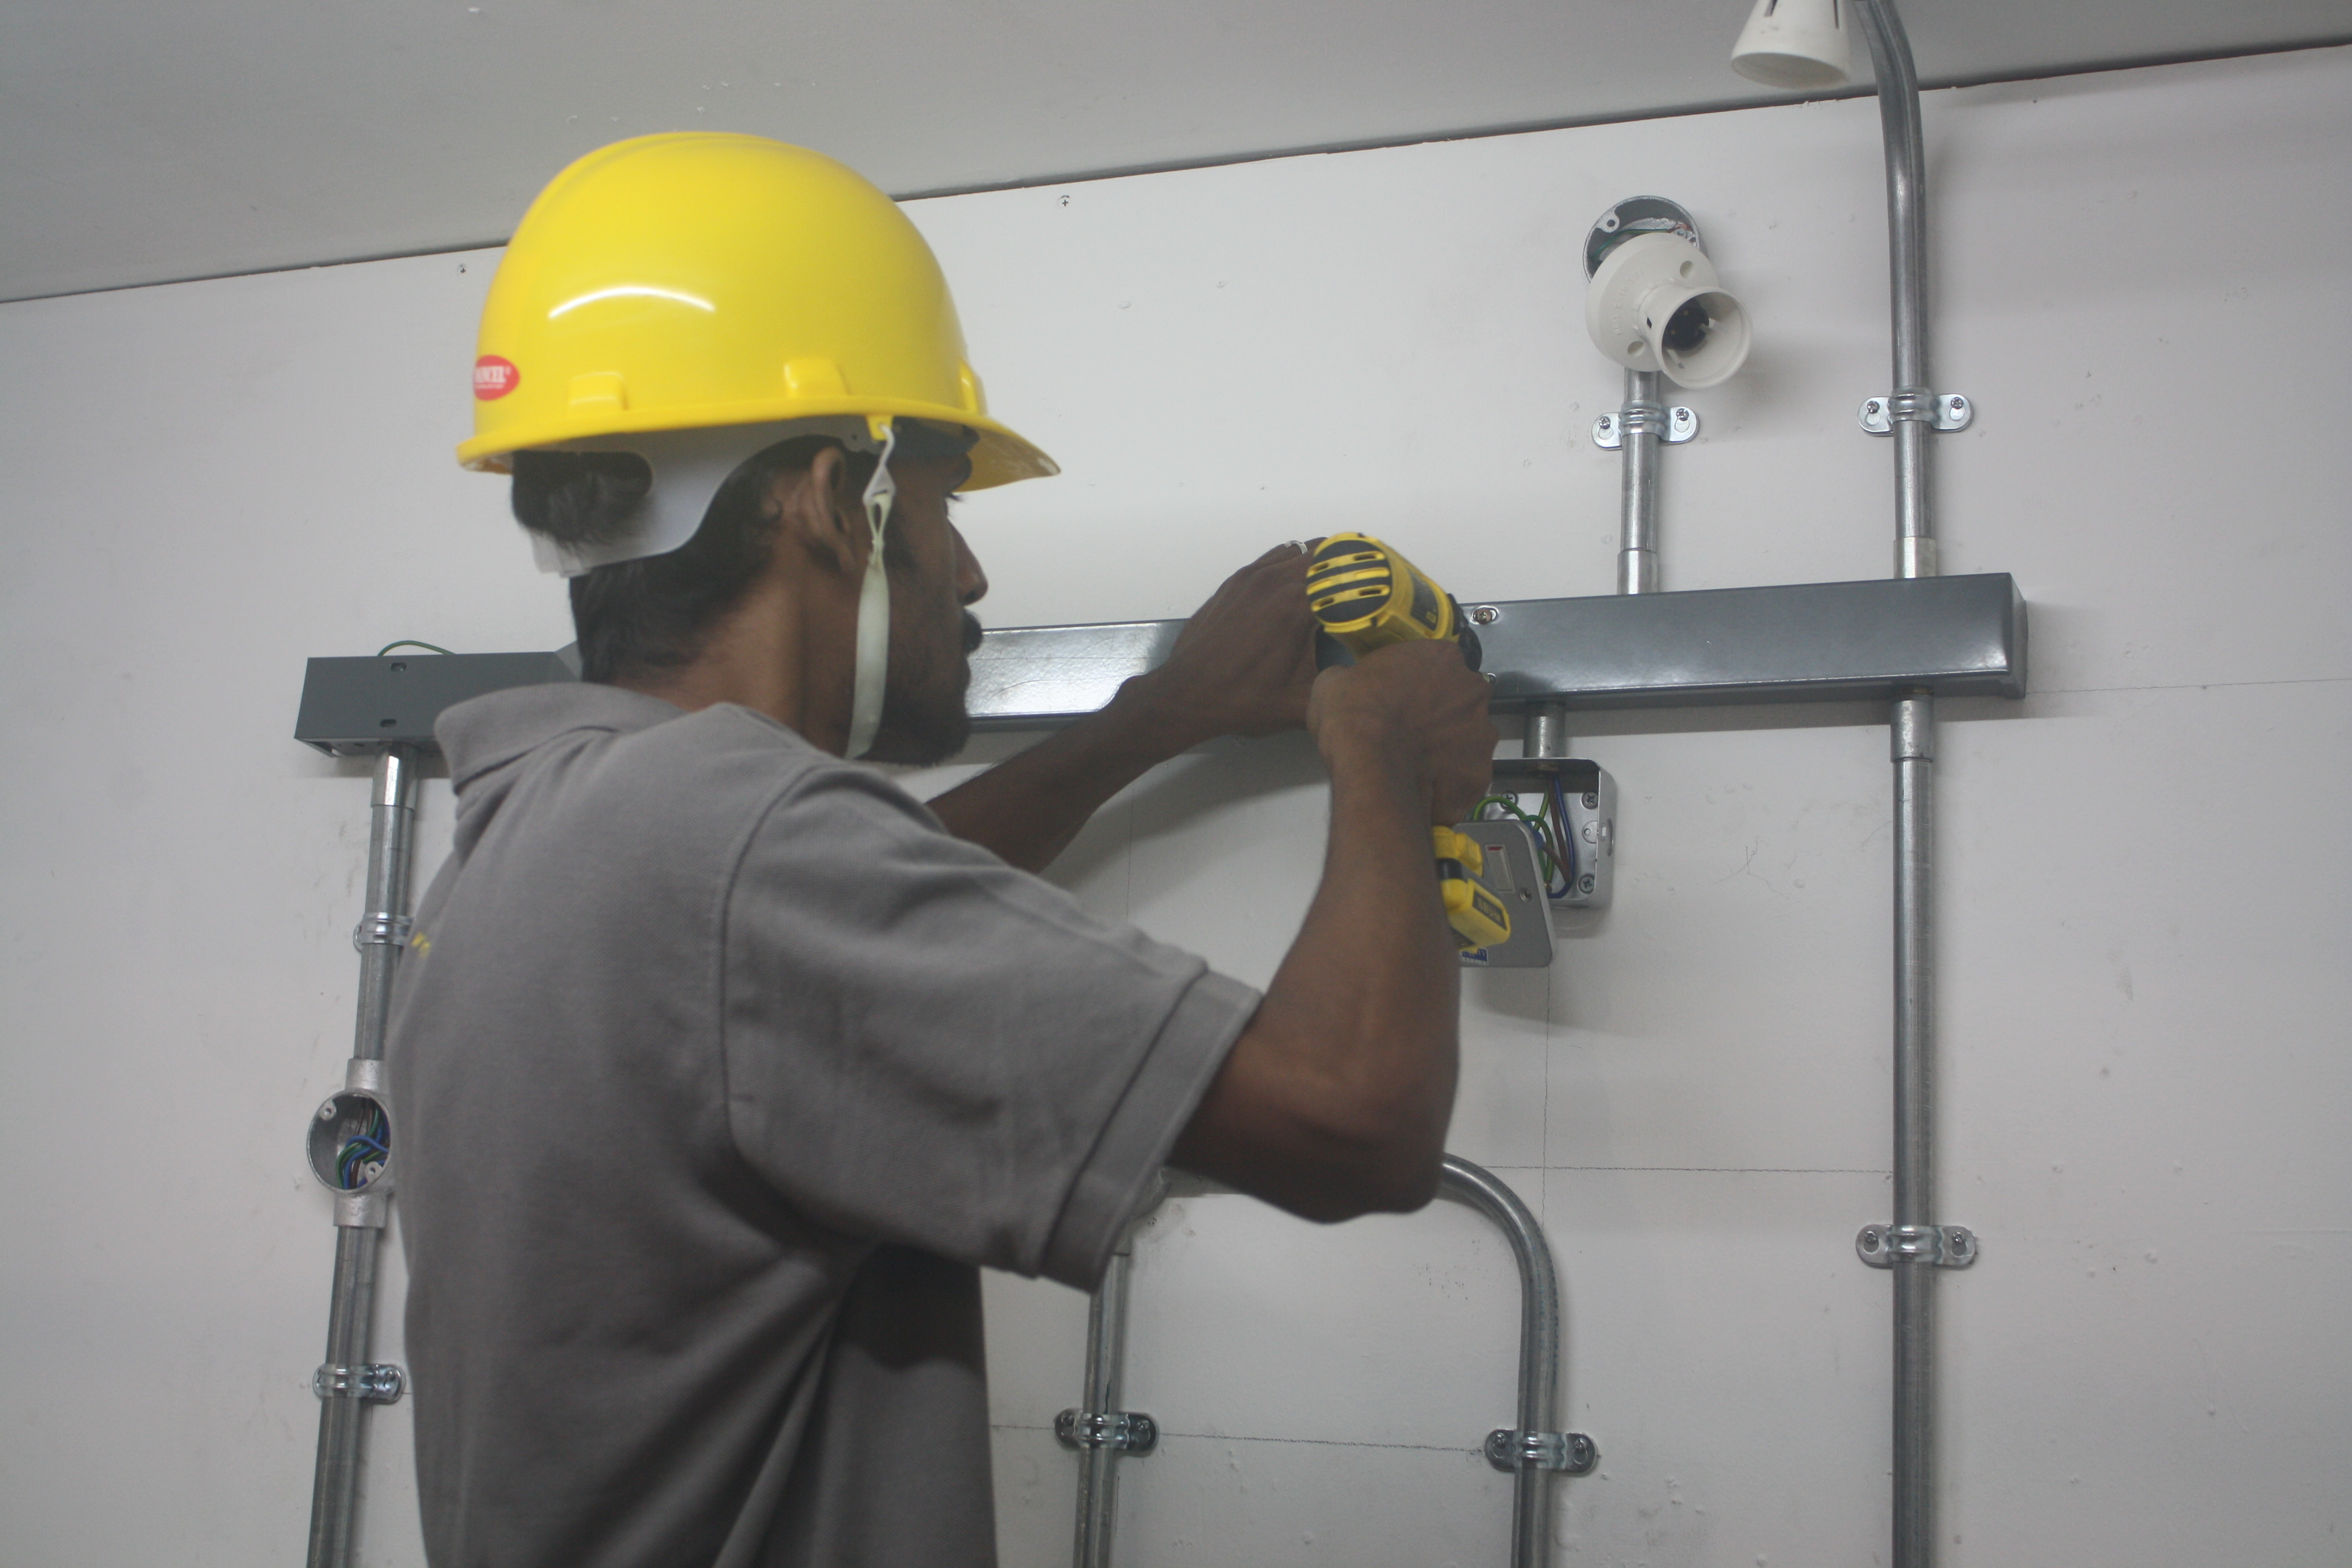 Electrical Wiring Installation - Grace Electrical Engineering on distribution board, wiring diagram, junction box, earthing system, circuit breaker, knob and tube wiring, electric motor, extension cord, electrical conduit, electrical engineering, ground and neutral, three-phase electric power, power cable, electric power transmission, home wiring, alternating current, national electrical code,